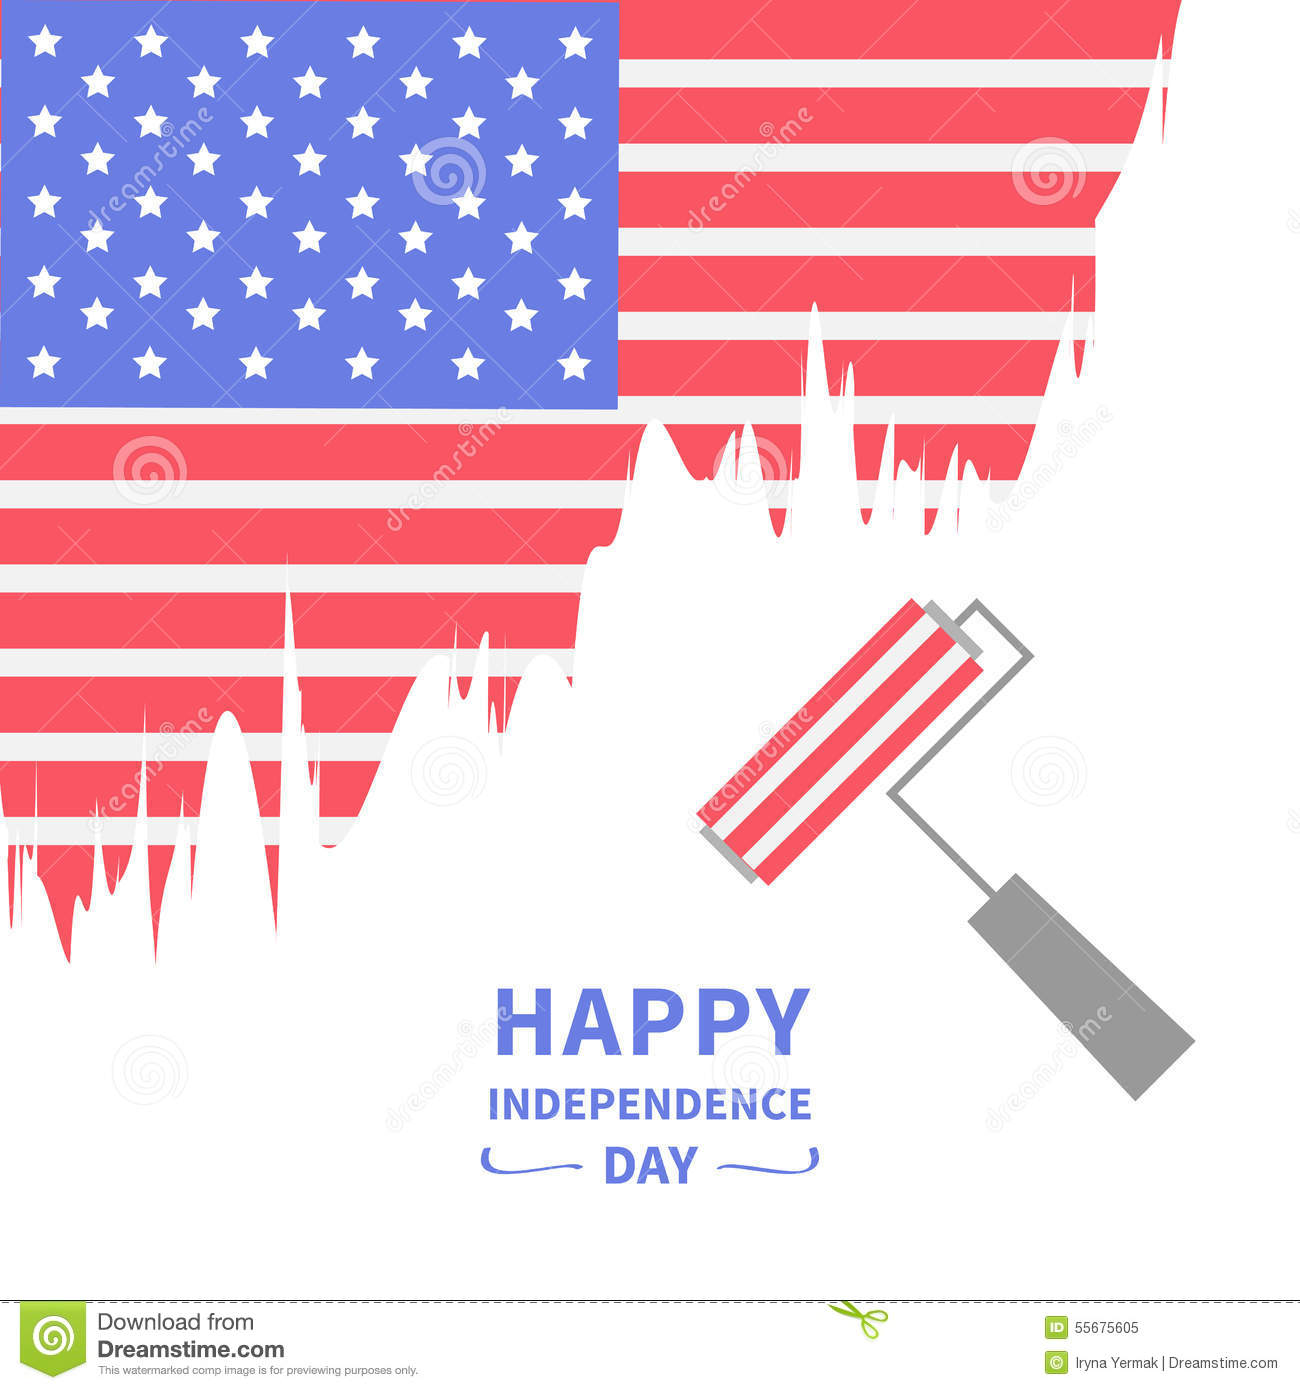 Paint Roller Brush Star And Strip Flag Happy Independence